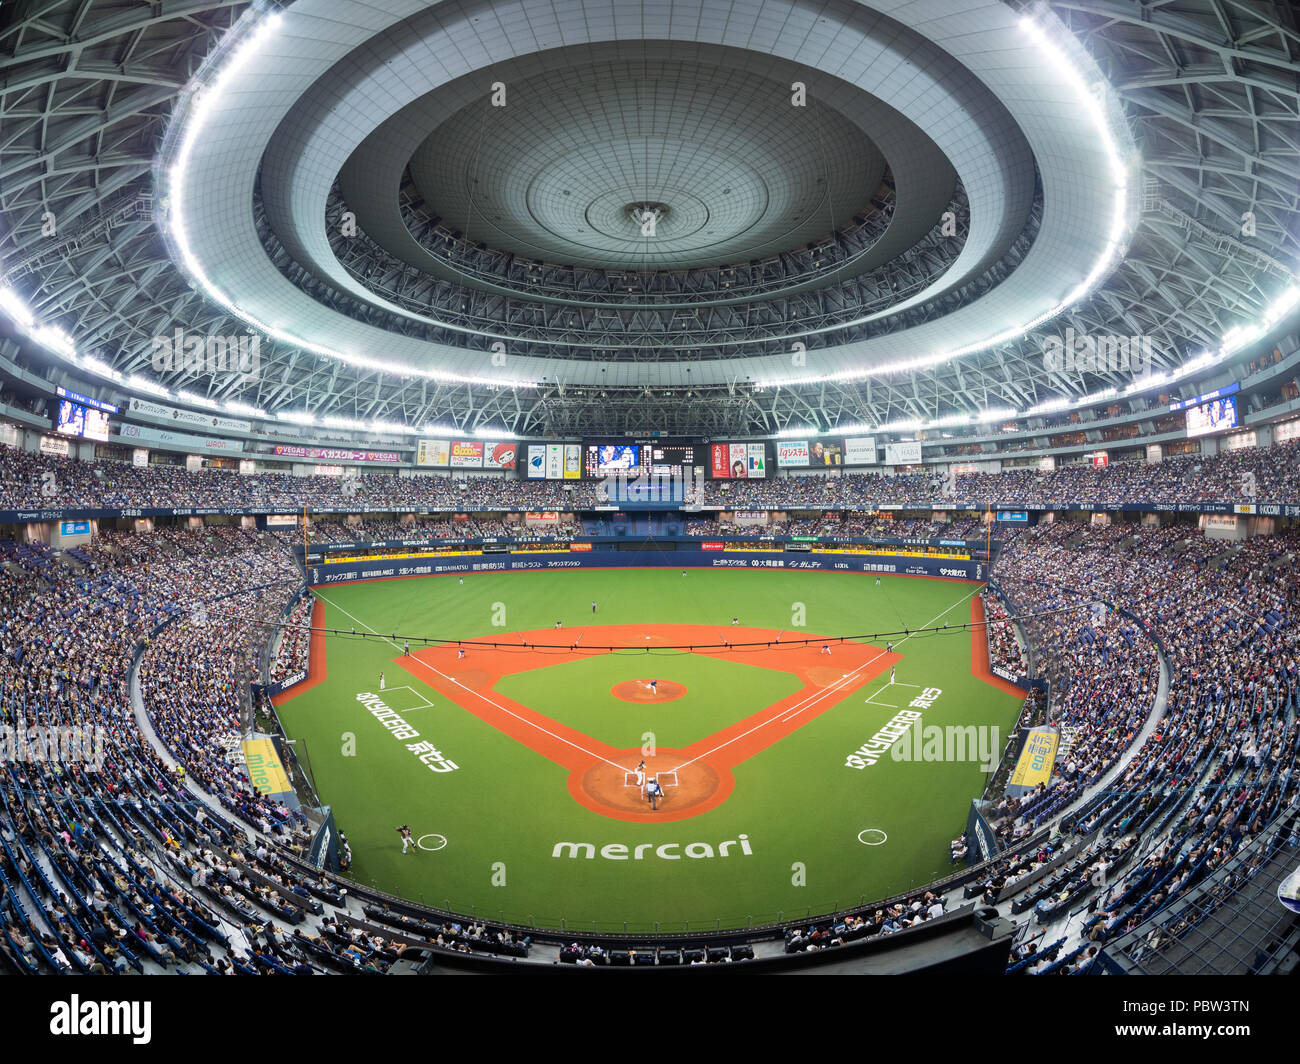 L'Osaka Orix Buffaloes jouer les Hokkaido Nippon Ham Fighters dans l'Kyocera Dome à Osaka du baseball professionnel japonais l'action. Photo Stock